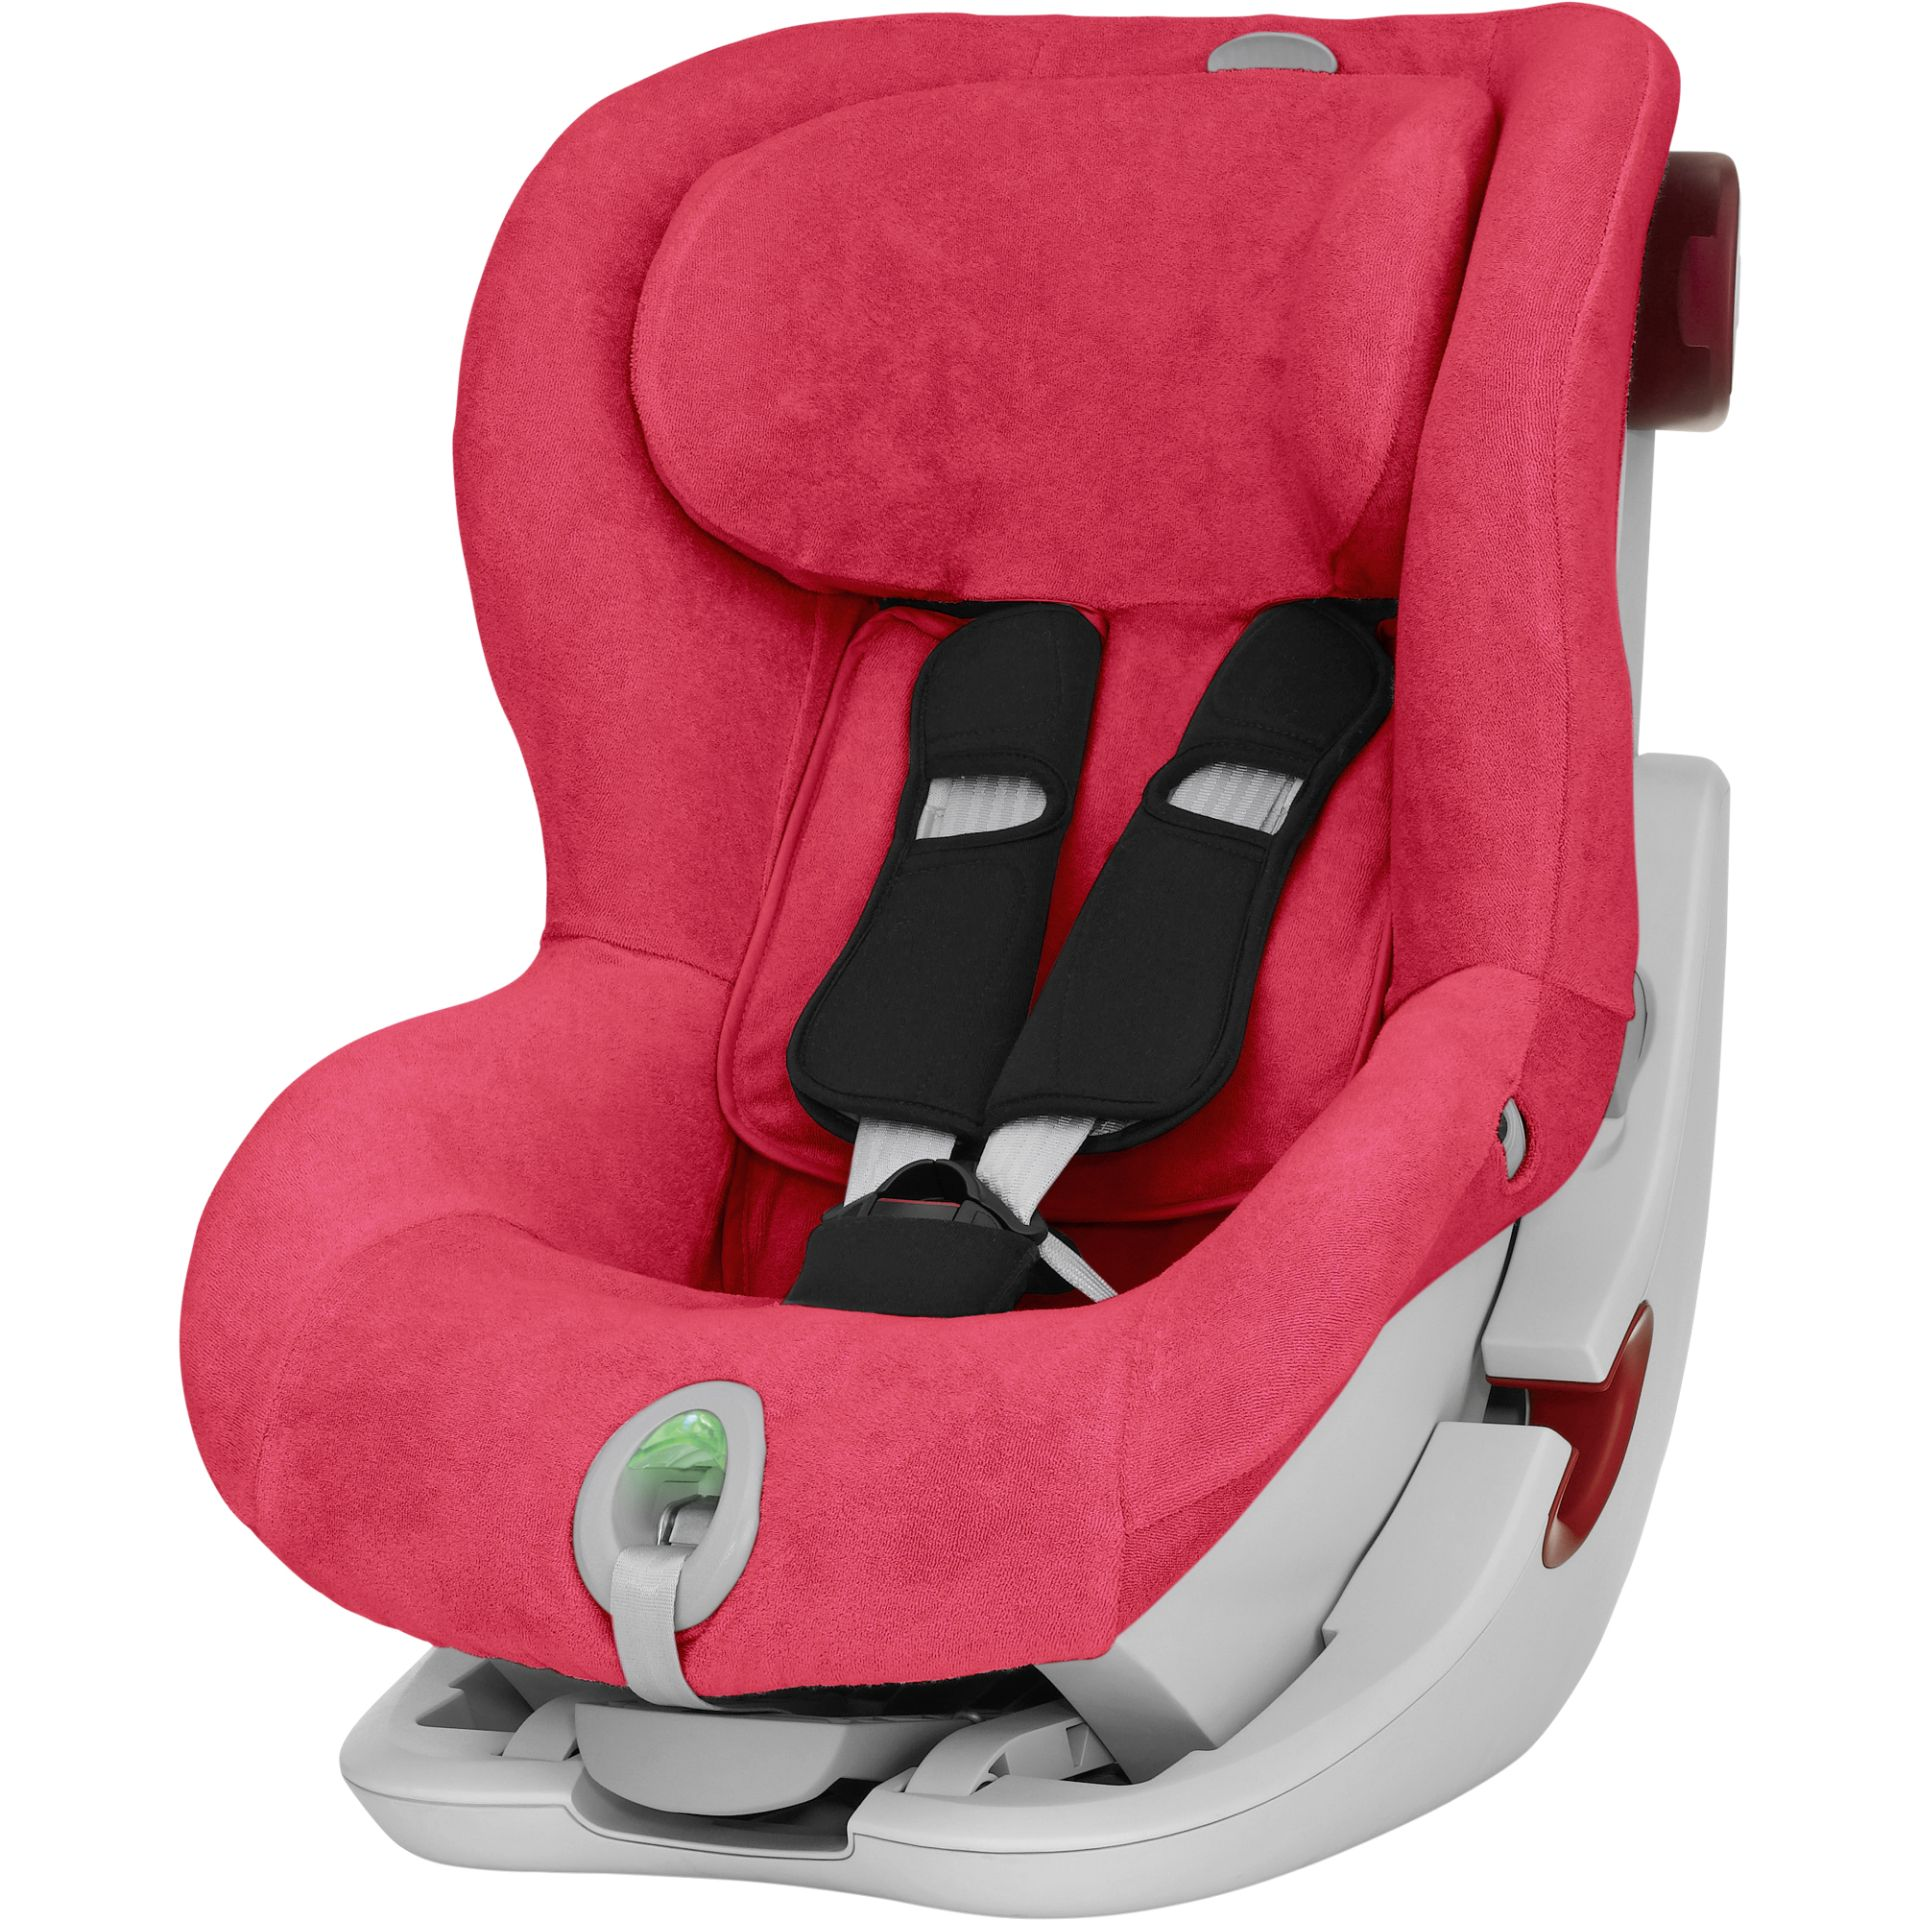 Britax Rmer Summer Cover For Child Car Seat King II LS And ATS Pink